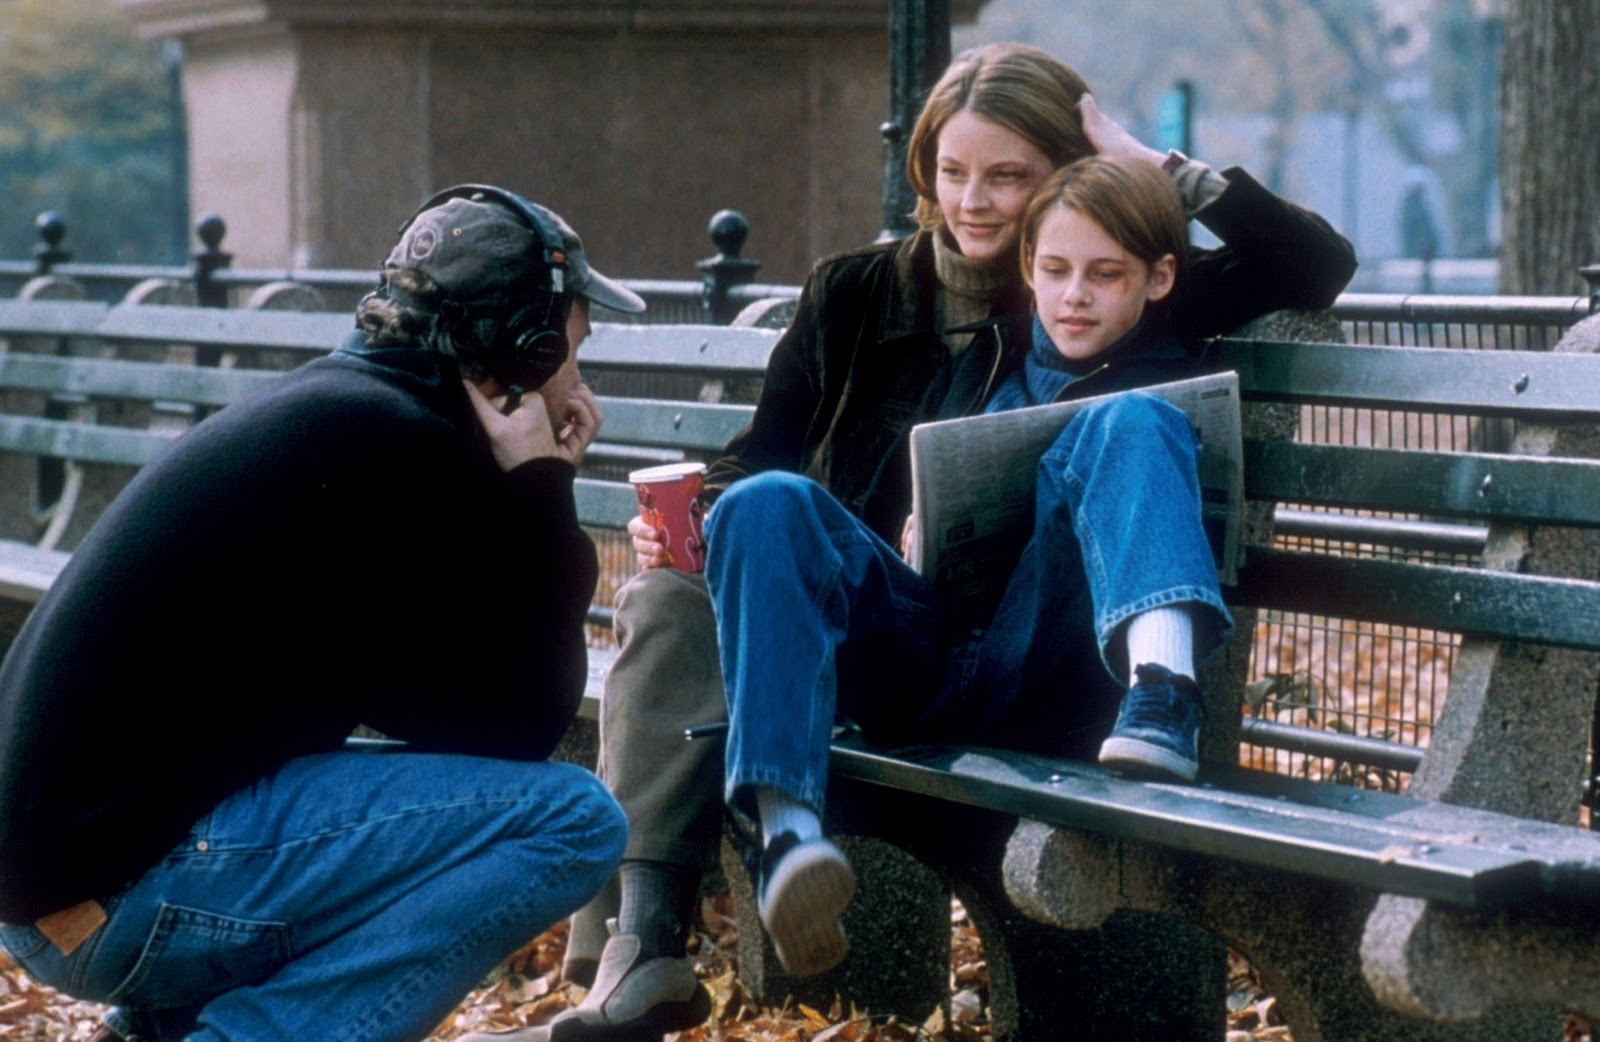 Go BehindtheScenes of Panic Room With OneHour Making